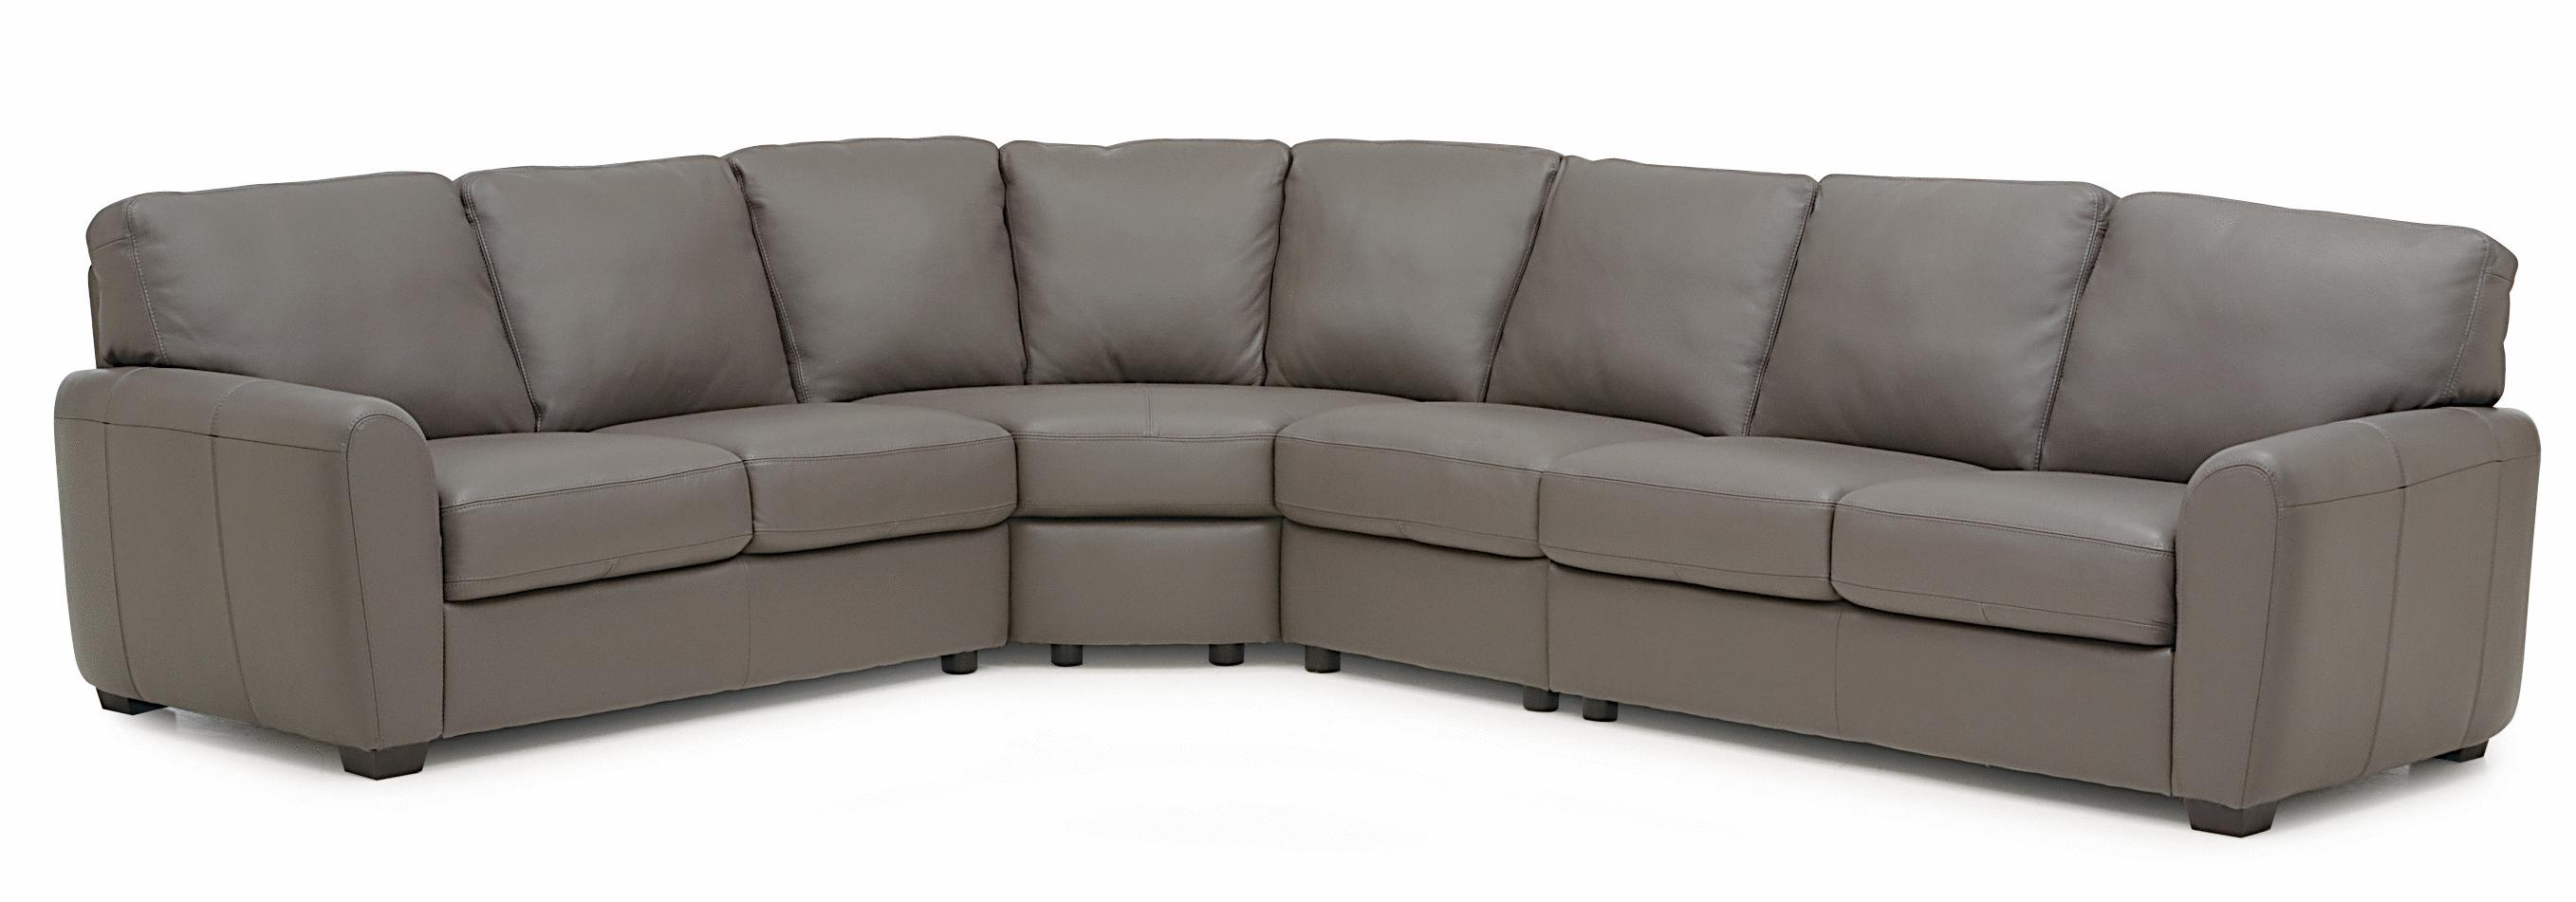 Connecticut Contemporary Sectional Sofa With LHF Loveseat